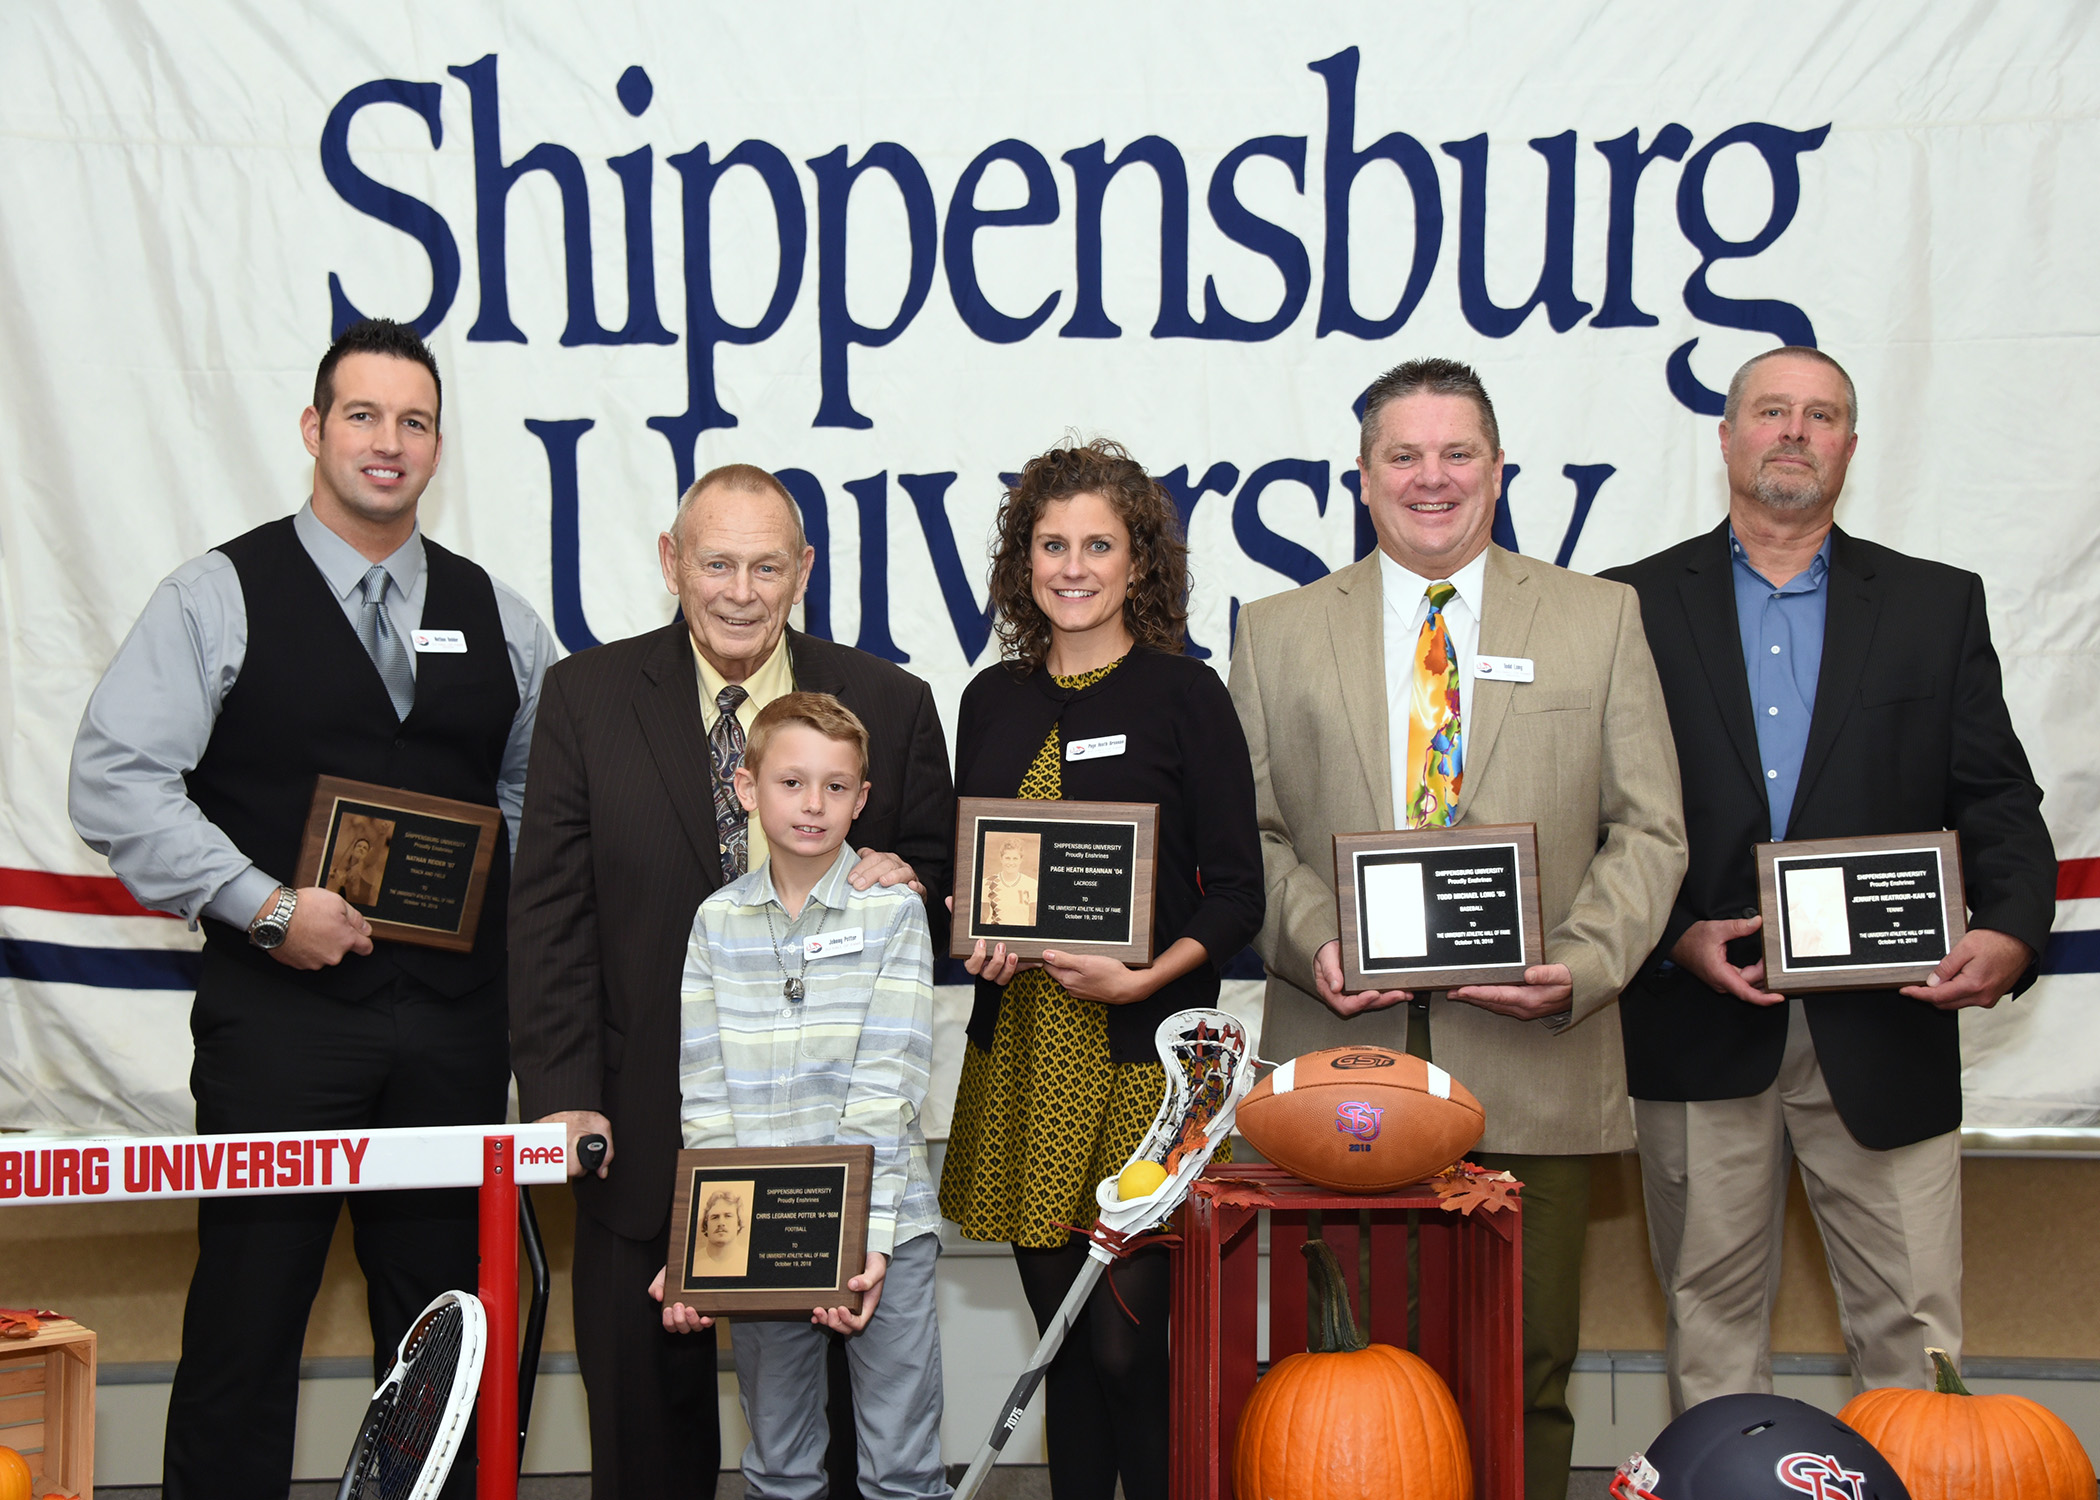 Newly minted members of Shippensburg University's Athletic Hall of Fame were honored during Homecoming in October.